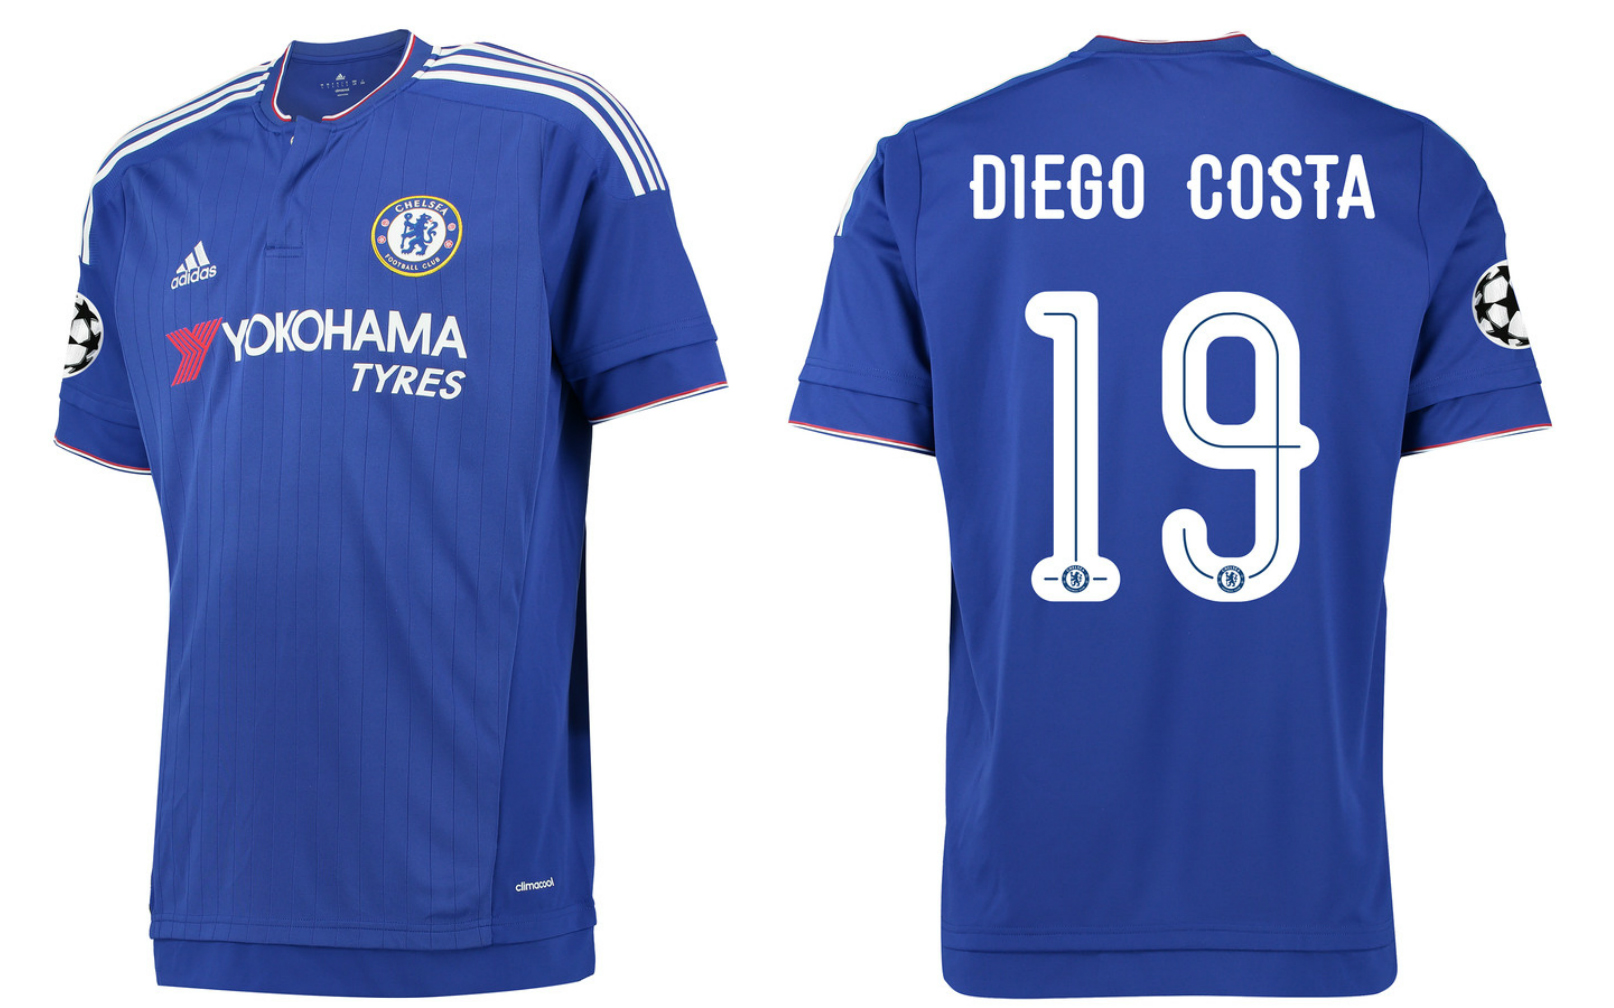 Chelsea 2015 2016 Ucl Font Ttf Otf And Vector